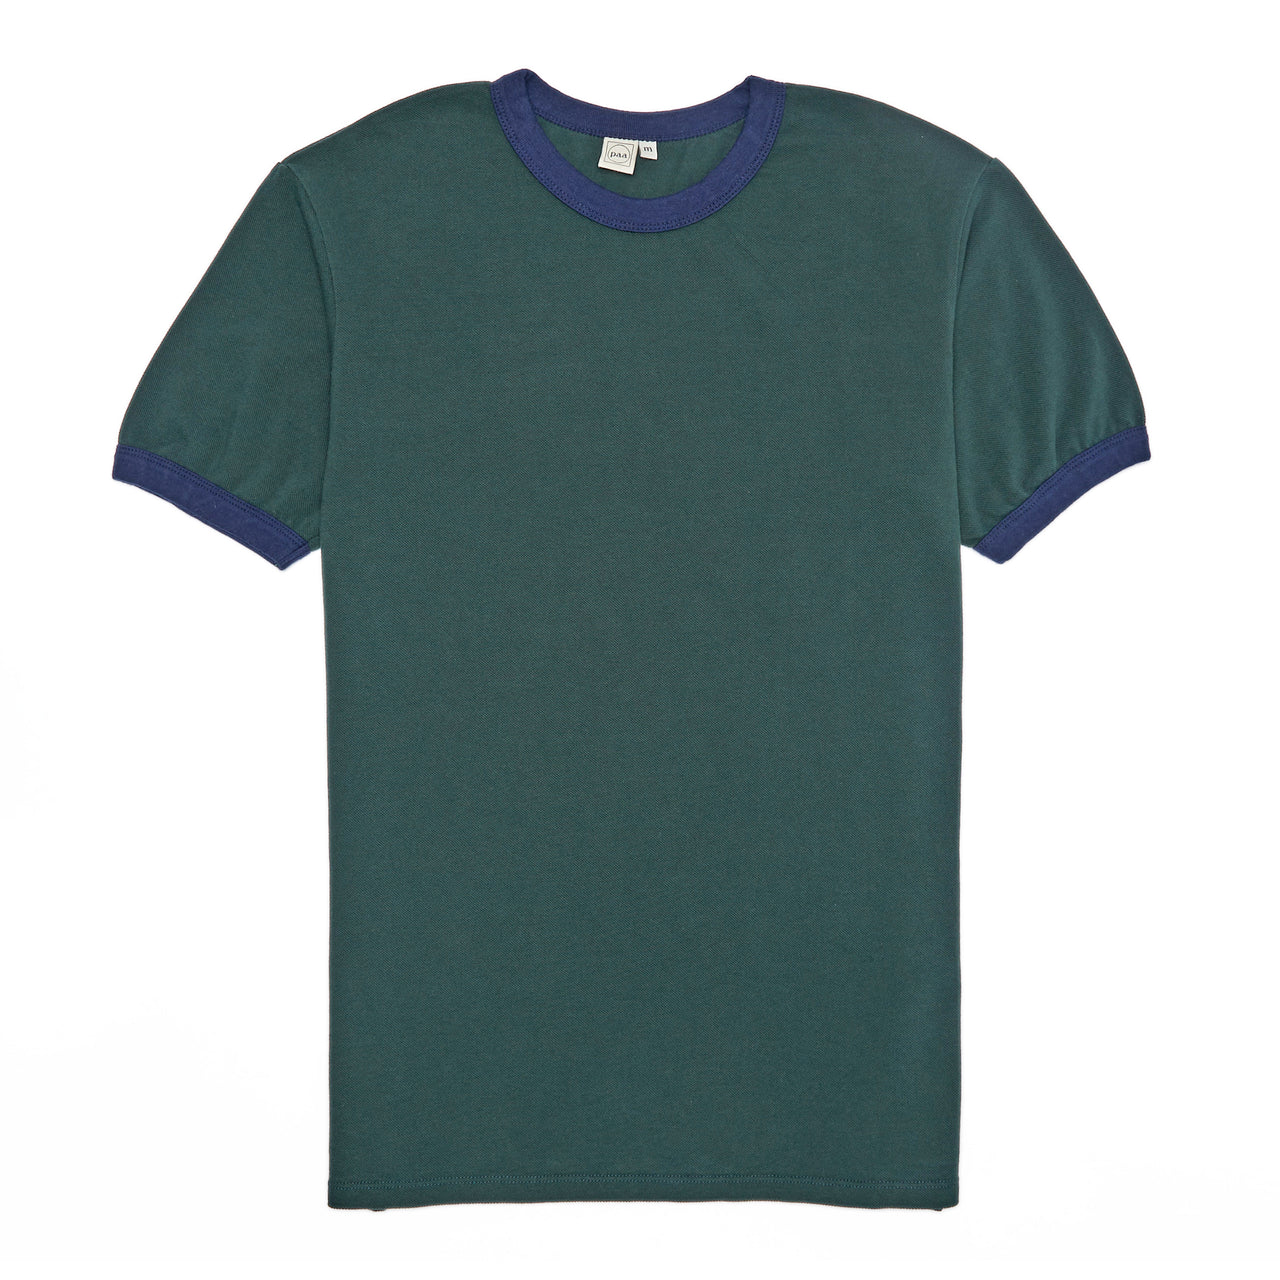 SS Pique Ringer Tee - Forest